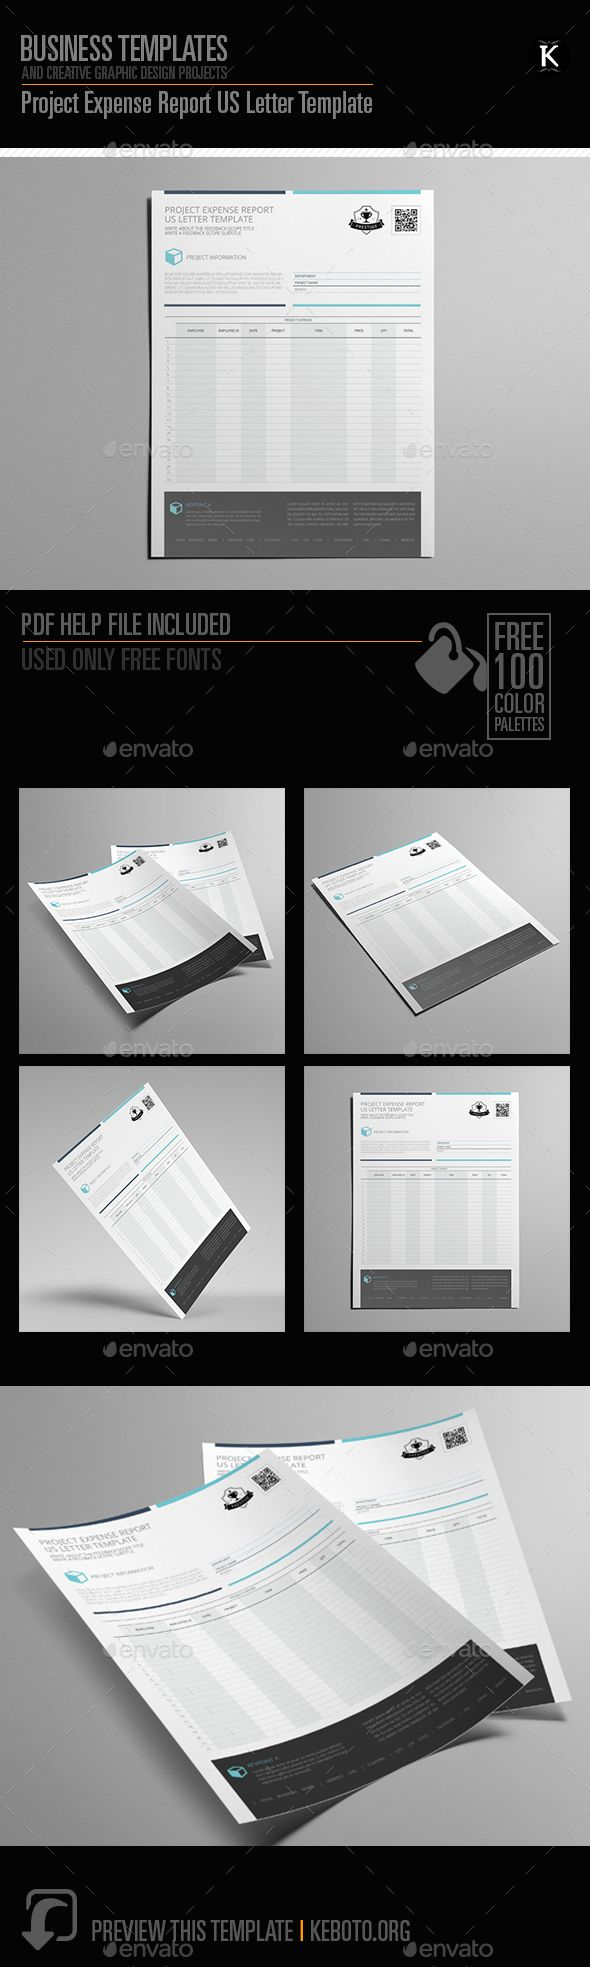 Project Expense Report US Letter Template